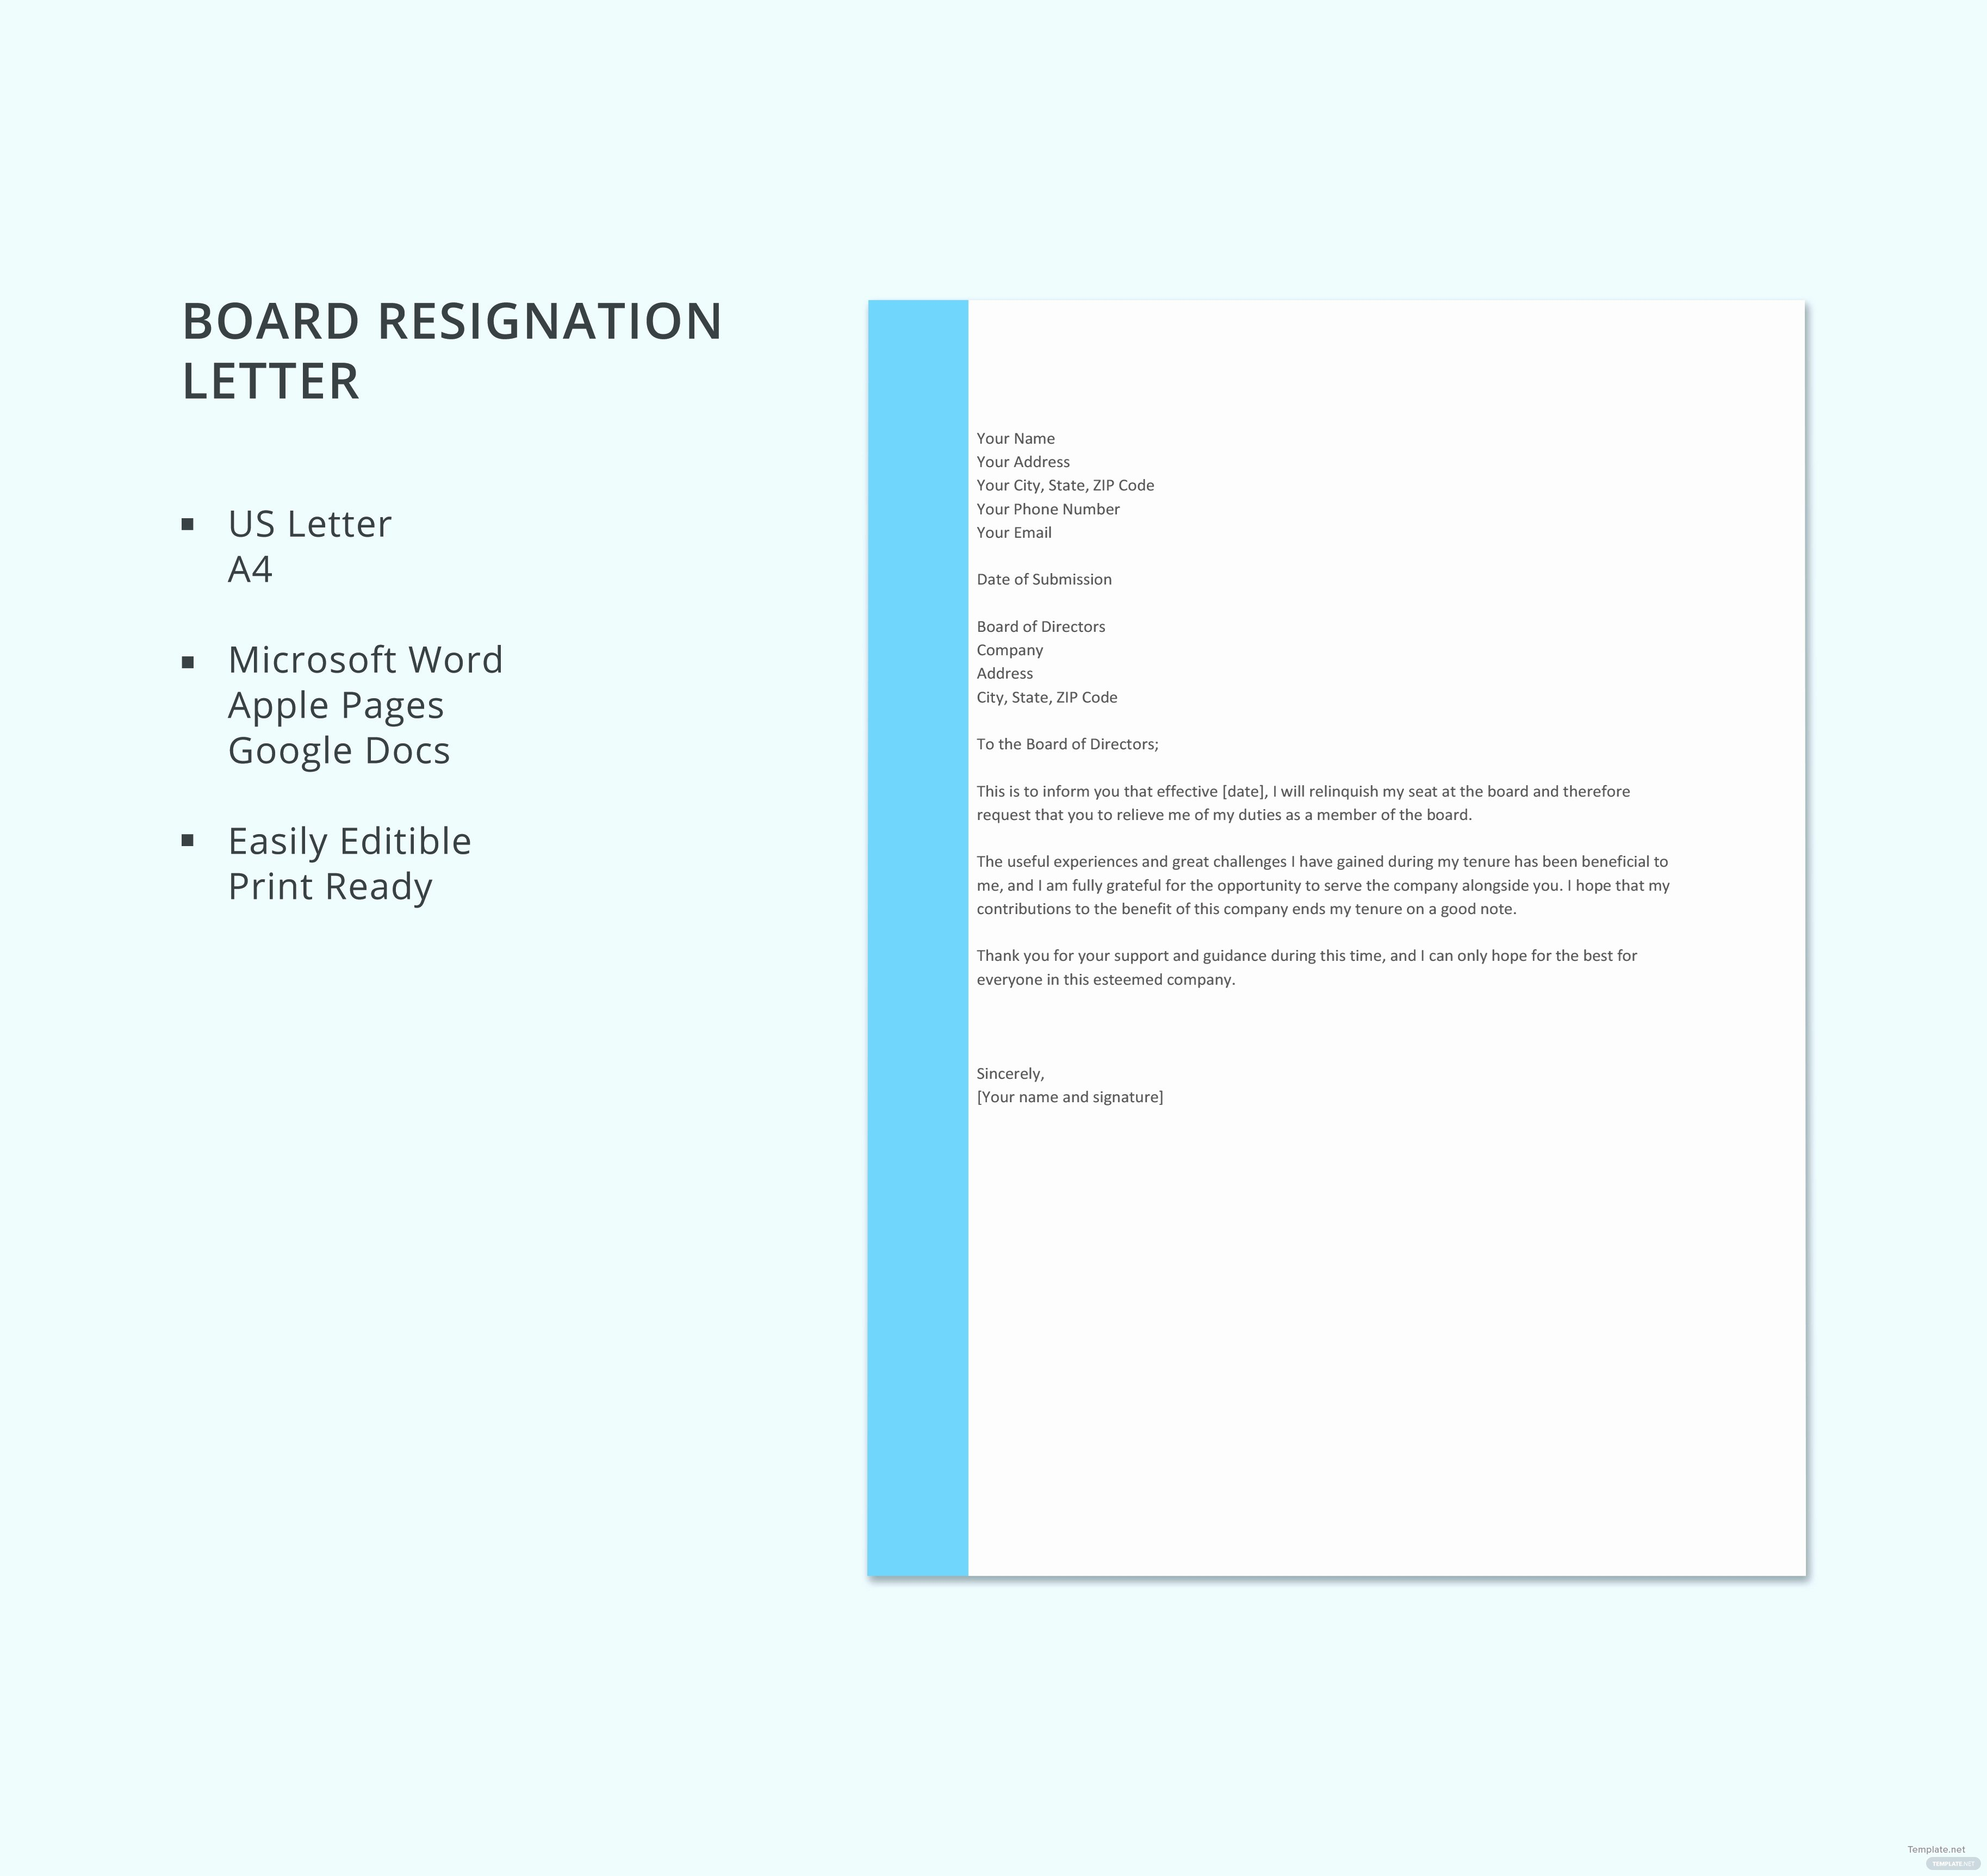 Letter Of Resignation Template Microsoft Luxury Free Board Resignation Letter Template In Microsoft Word